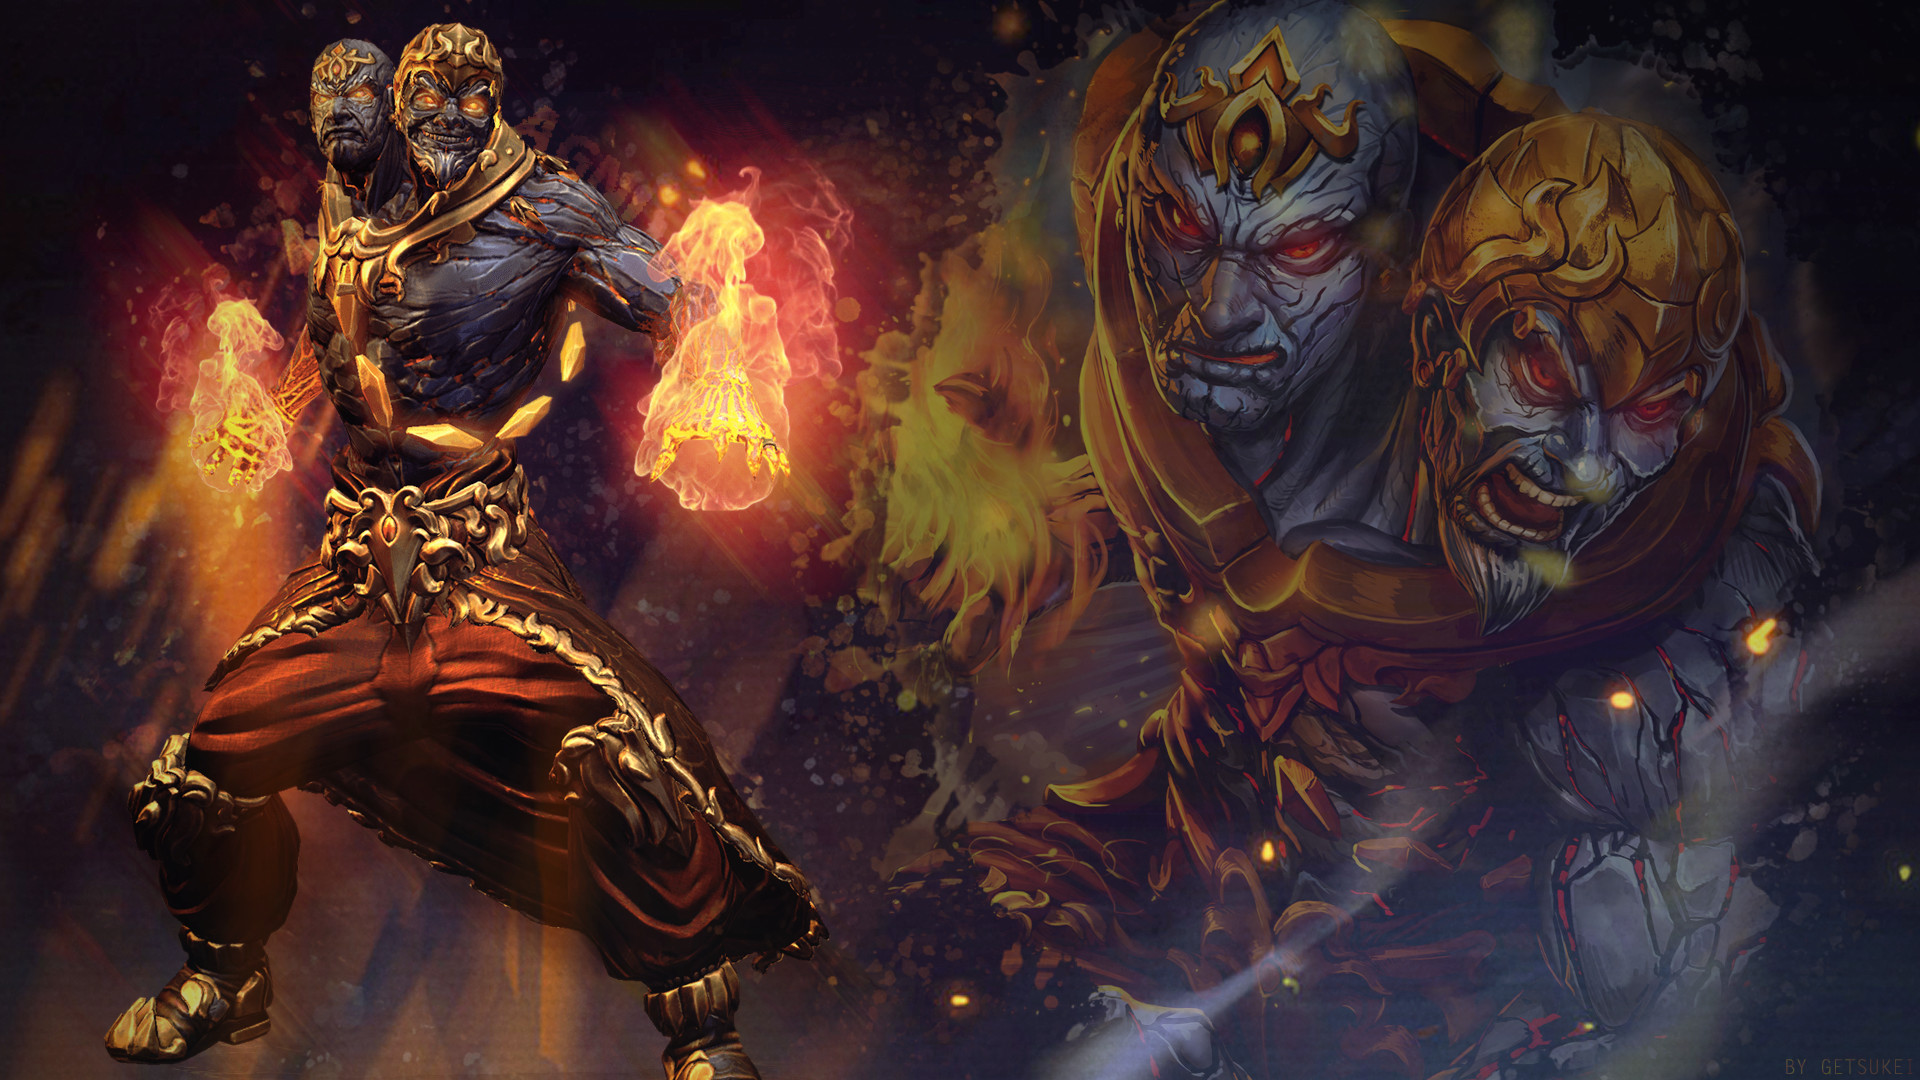 Introduction to Agni, the God of Fire